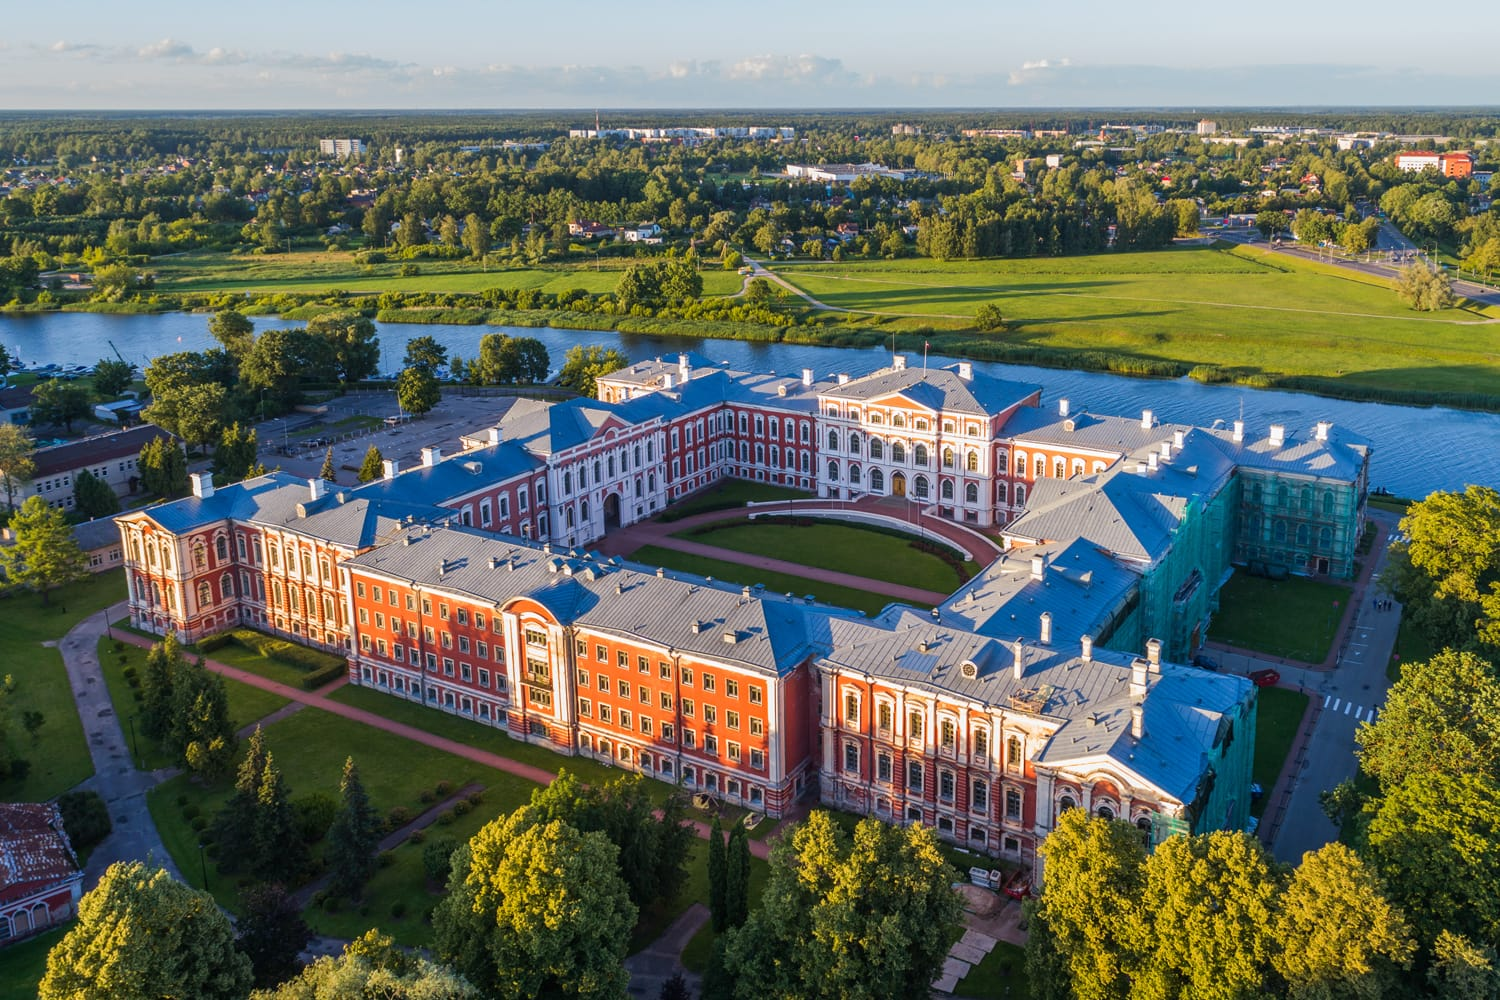 Aerial view of Jelgava palace in Latvia